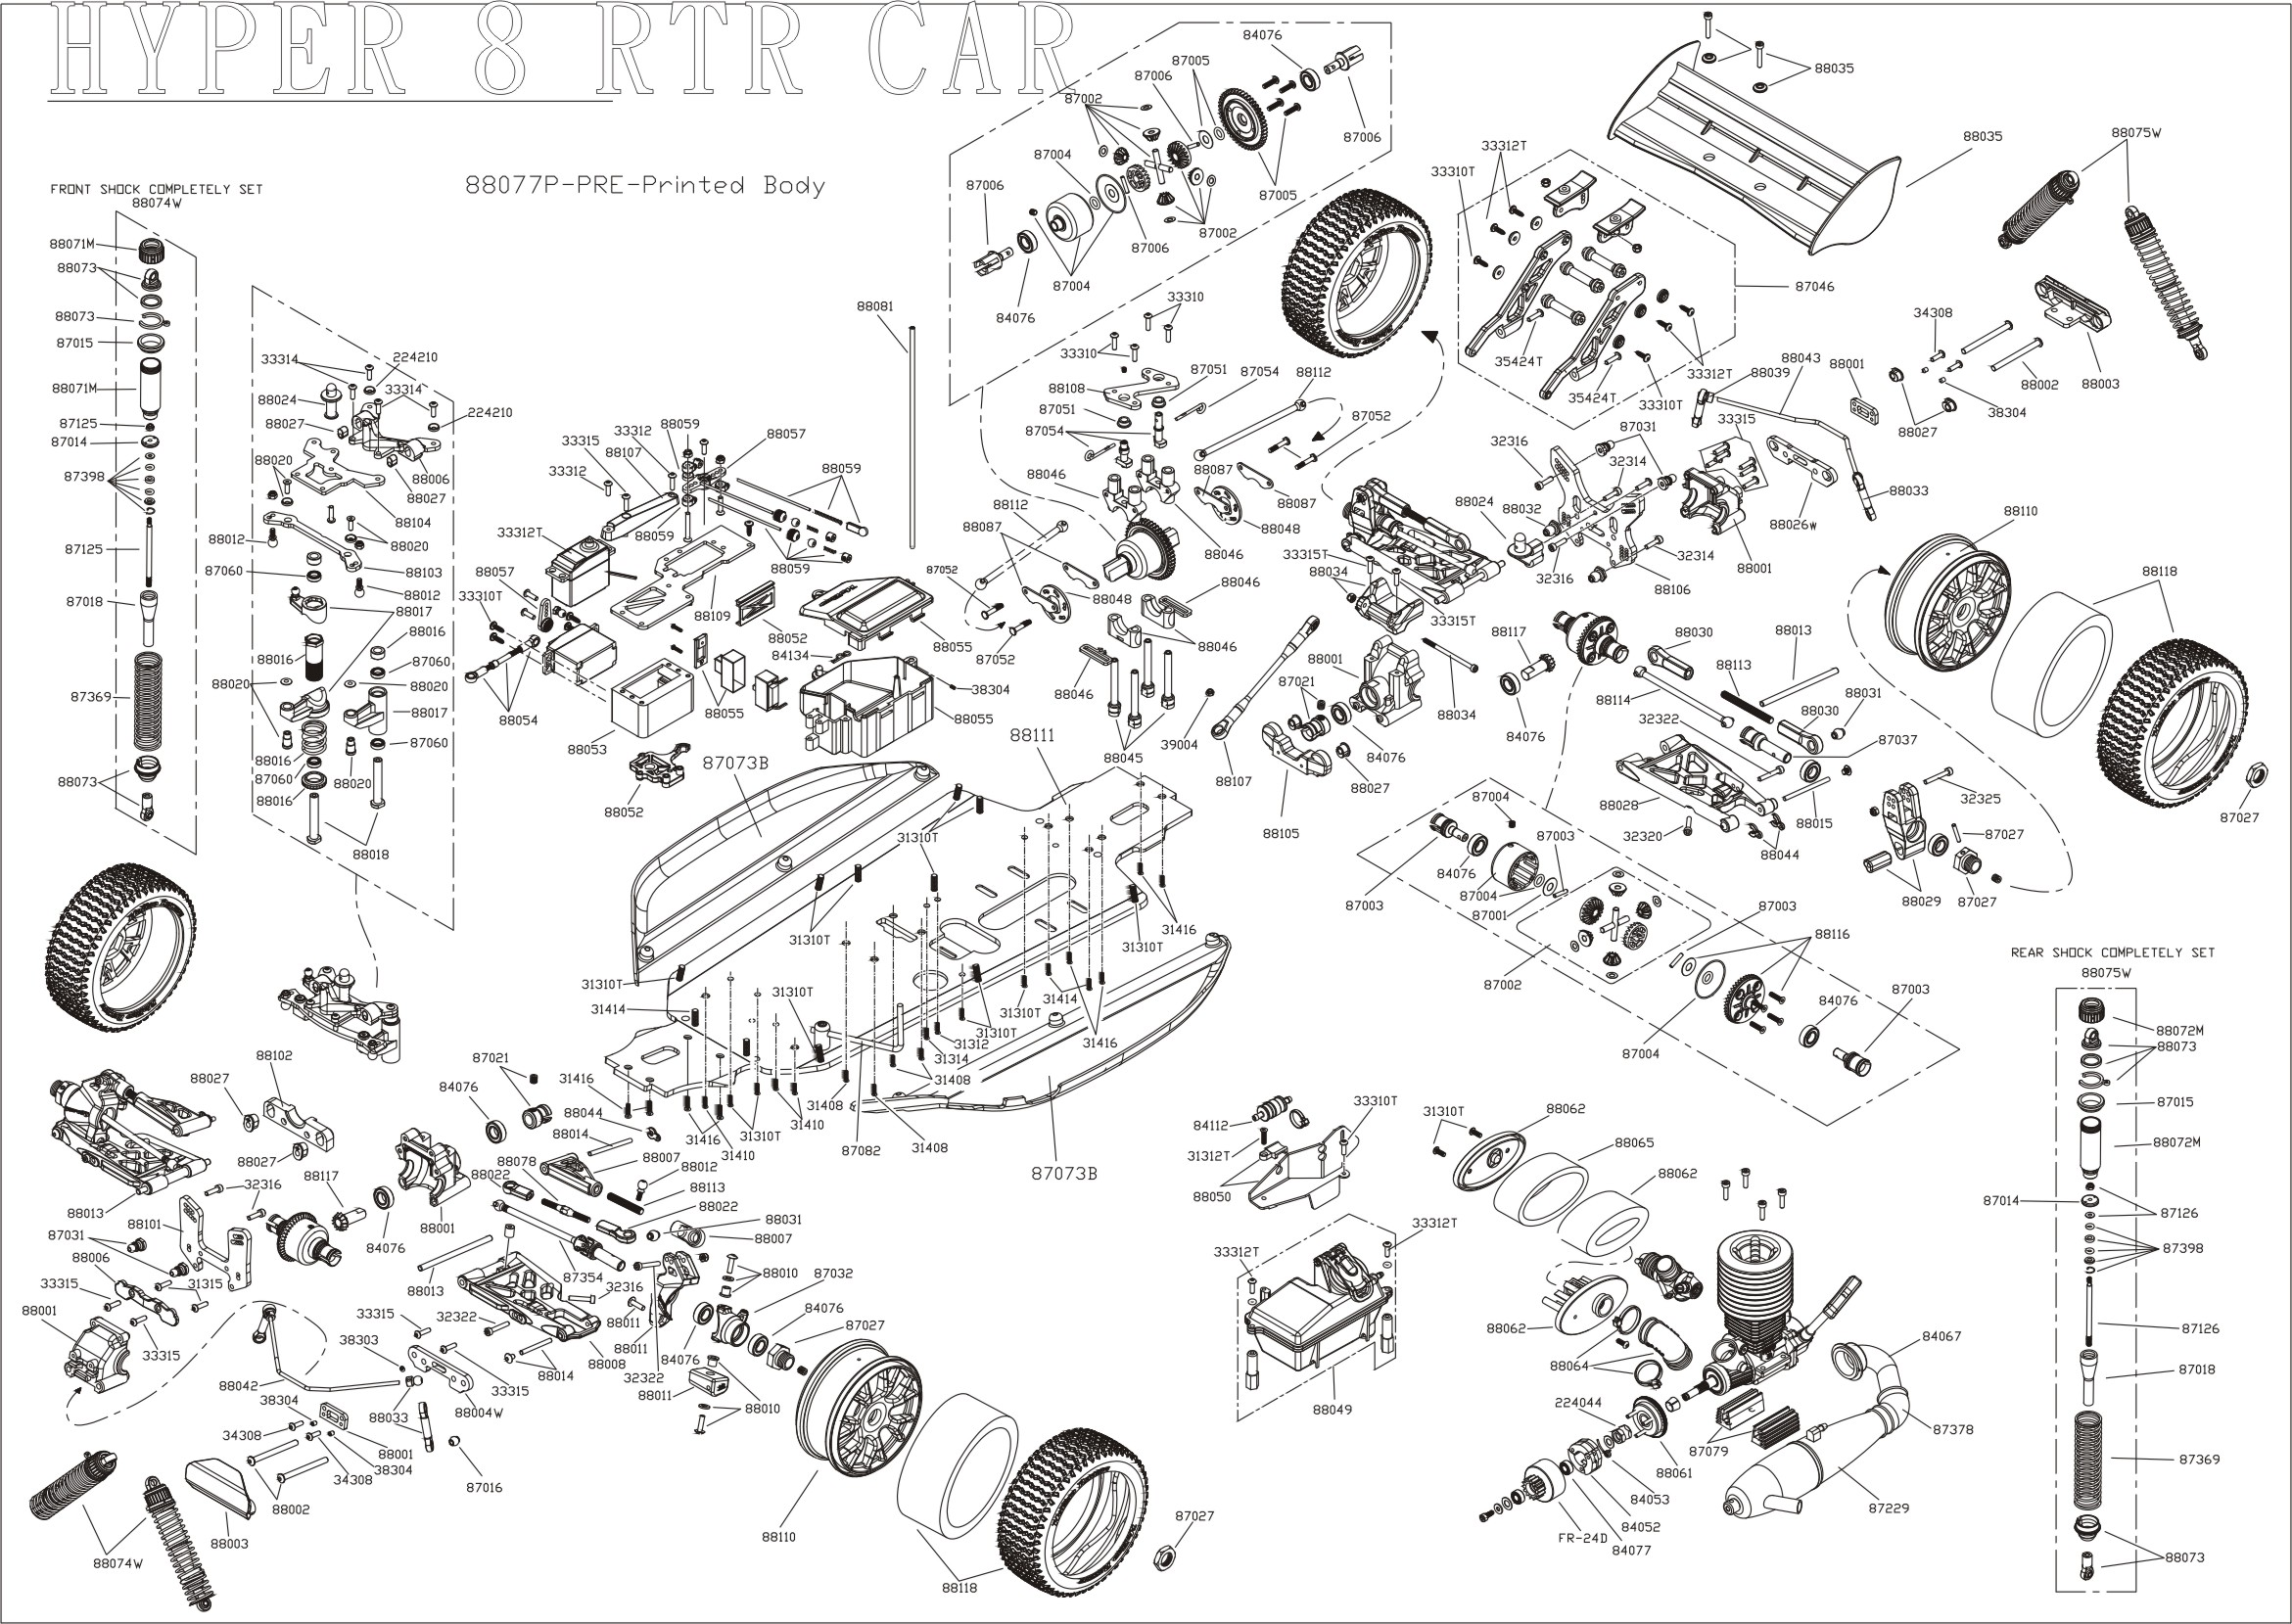 1000+ images about Exploded/Technical Drawings on Pinterest